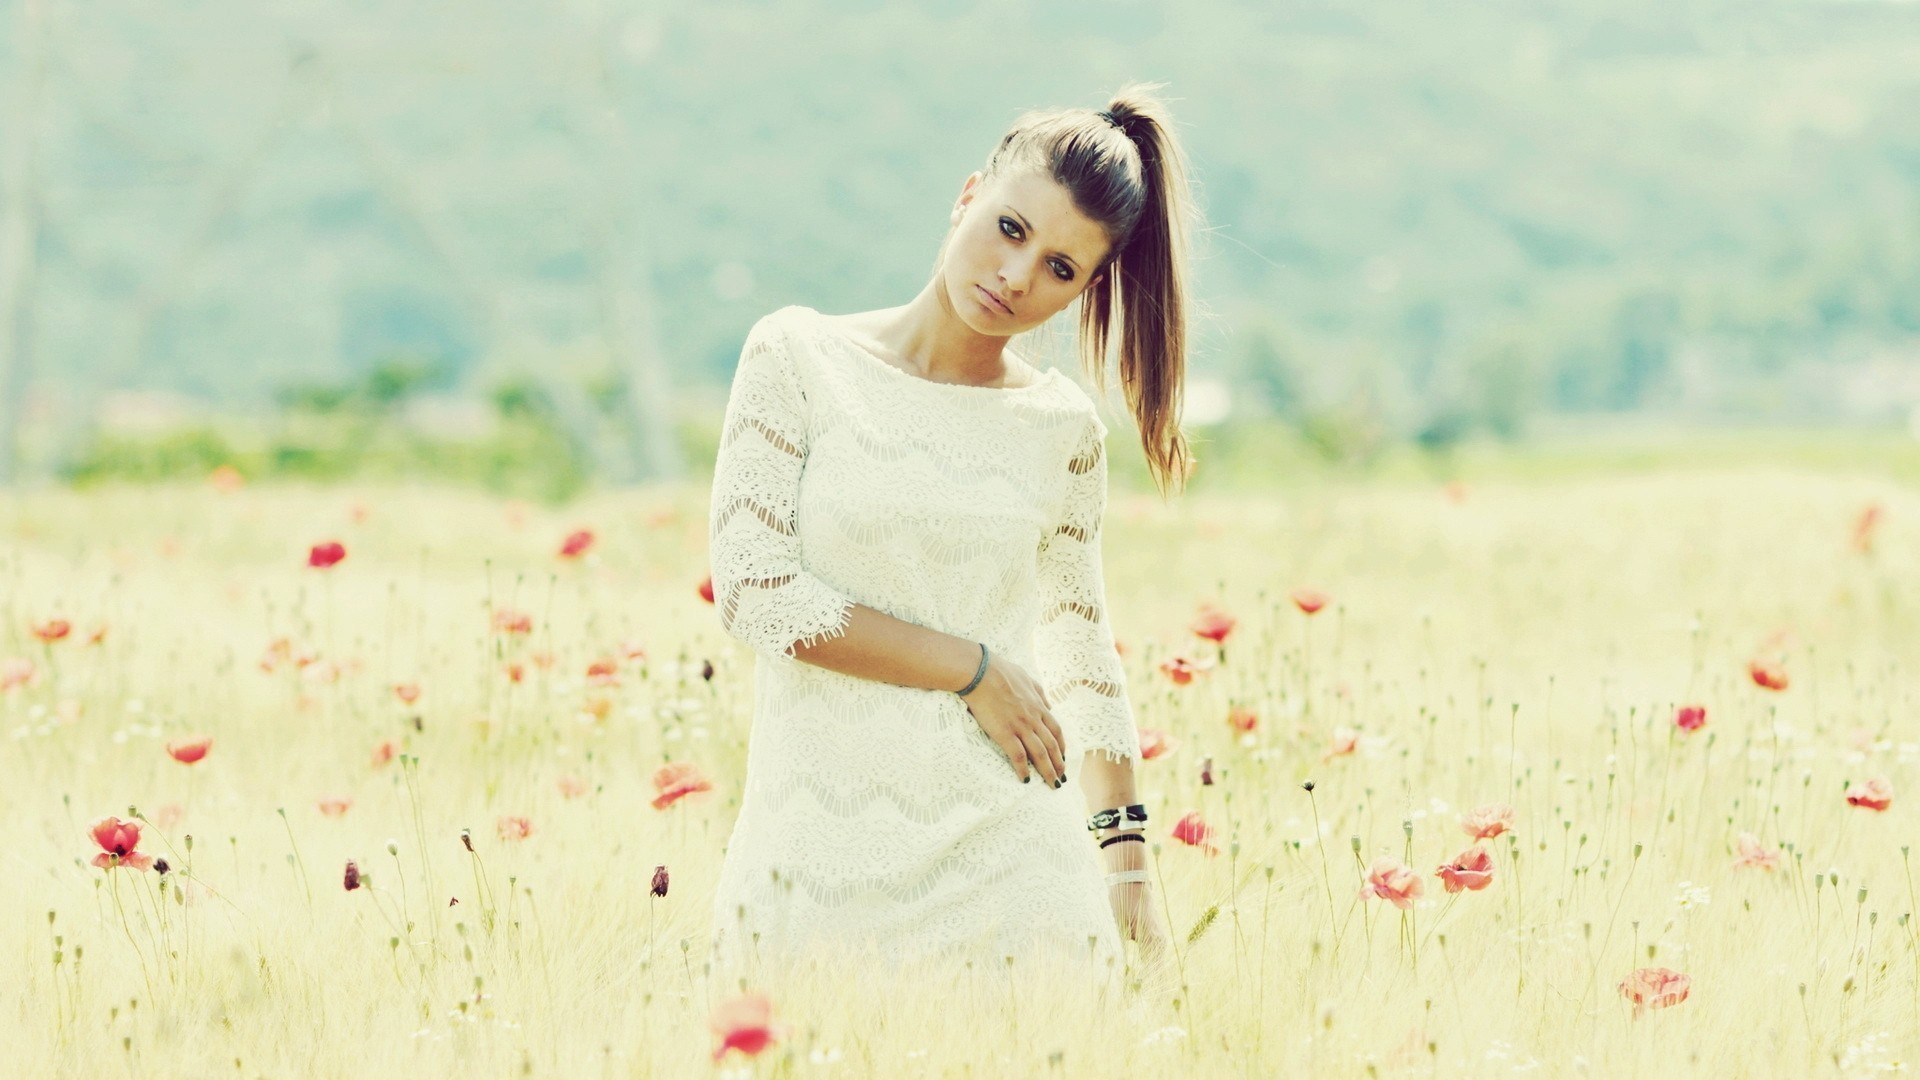 Beauty Model Girl Field Poppies Photo